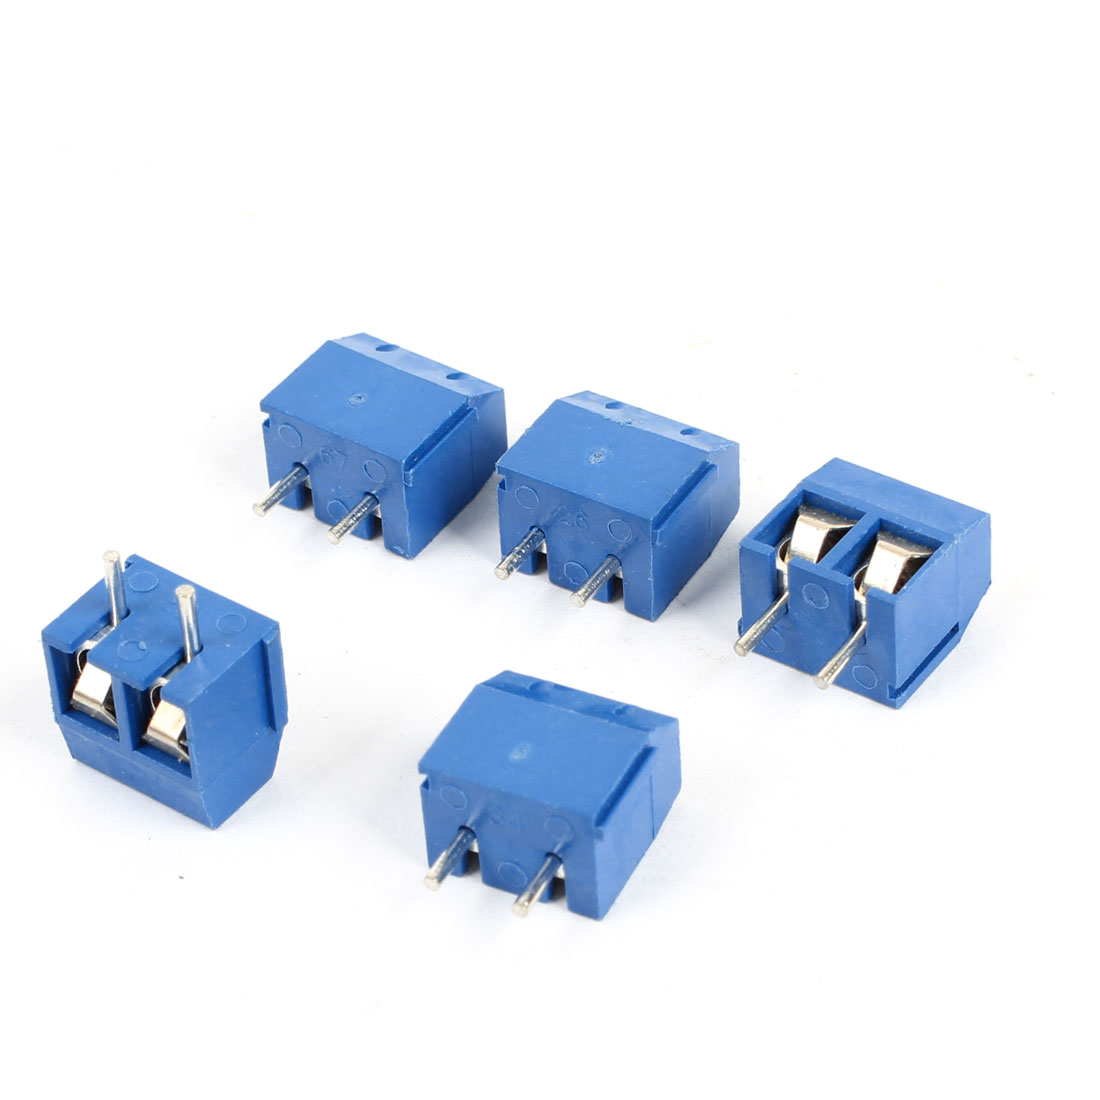 5 x 2 Poles 5.08mm Pitch Universal Screw Terminal Block PCB Connector 300V 16A